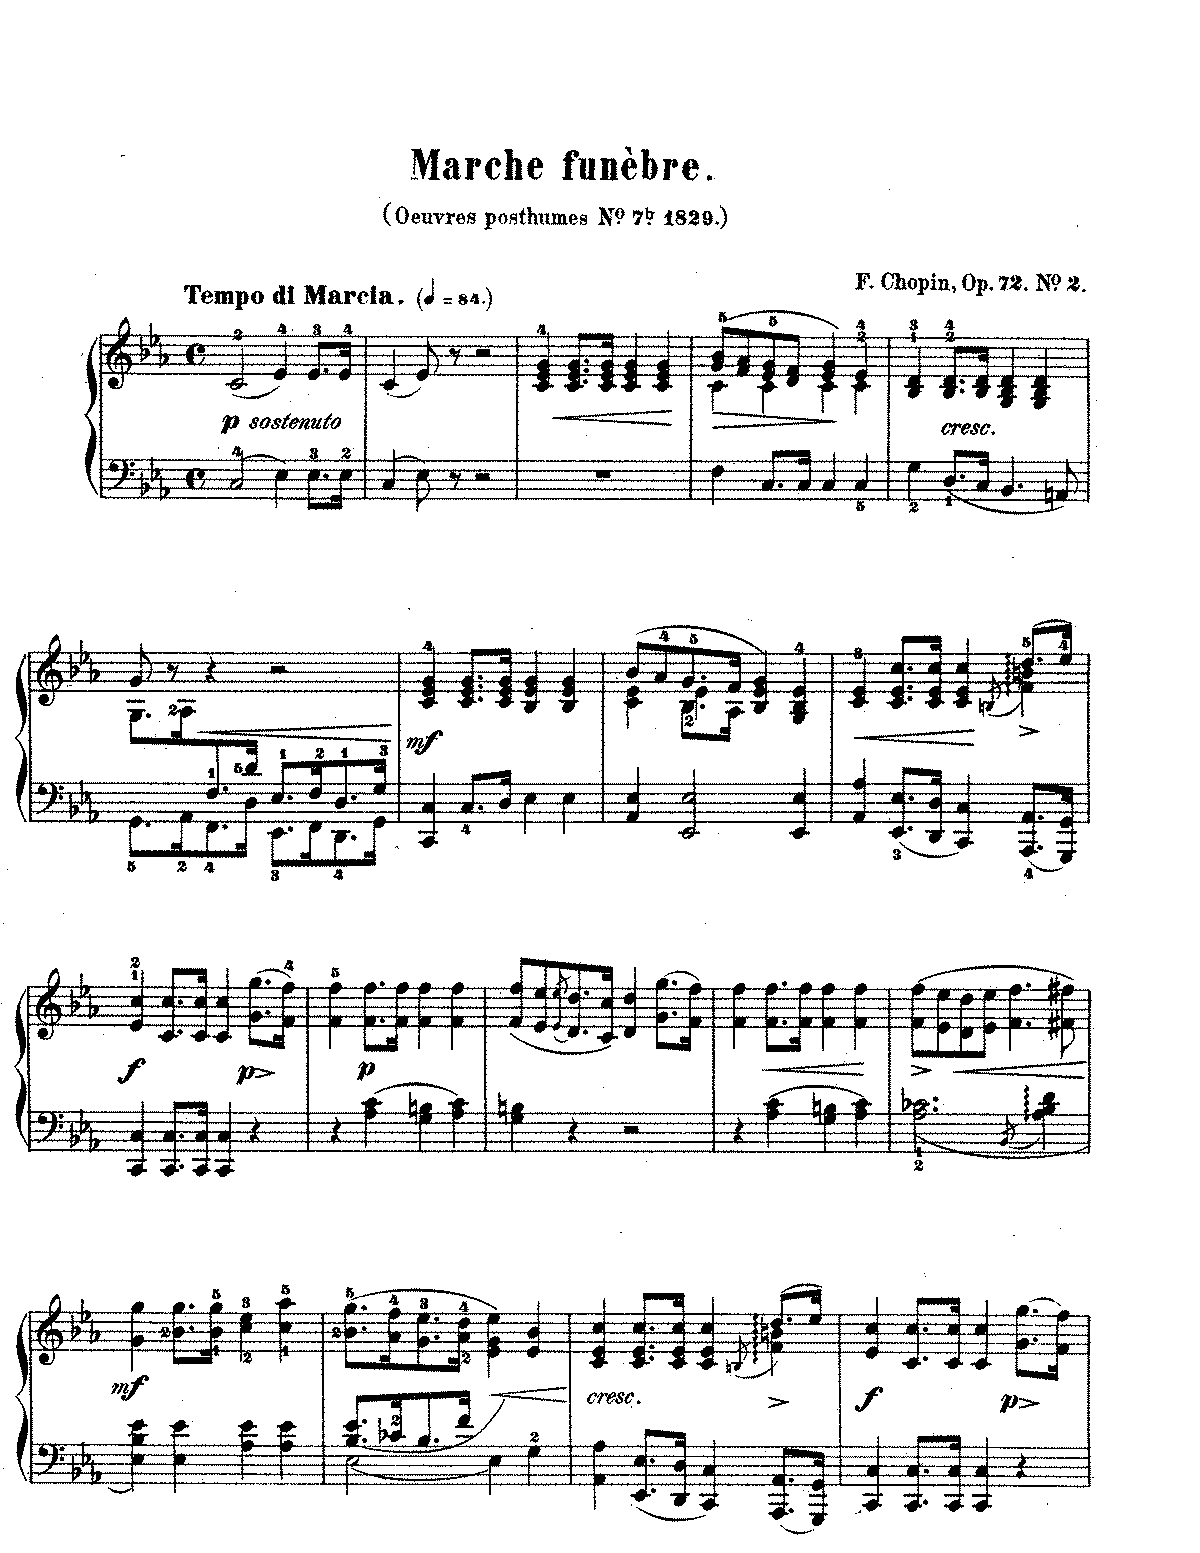 Chopin - Funeral March, Op 72.pdf